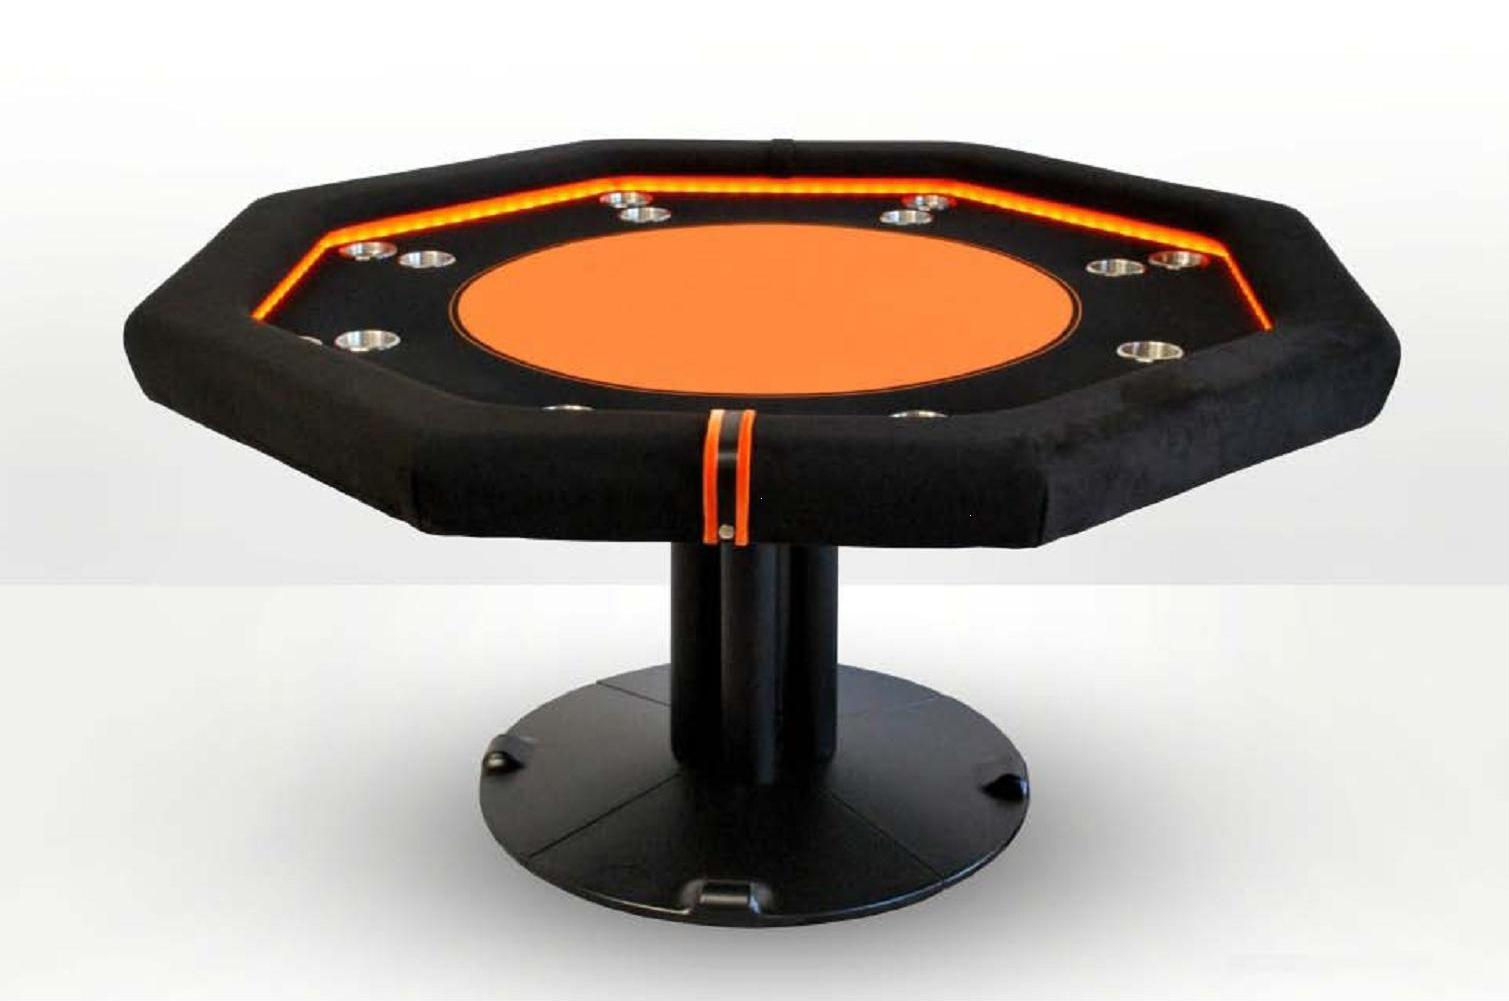 table de poker ovale caiman loisir metal orange. Black Bedroom Furniture Sets. Home Design Ideas